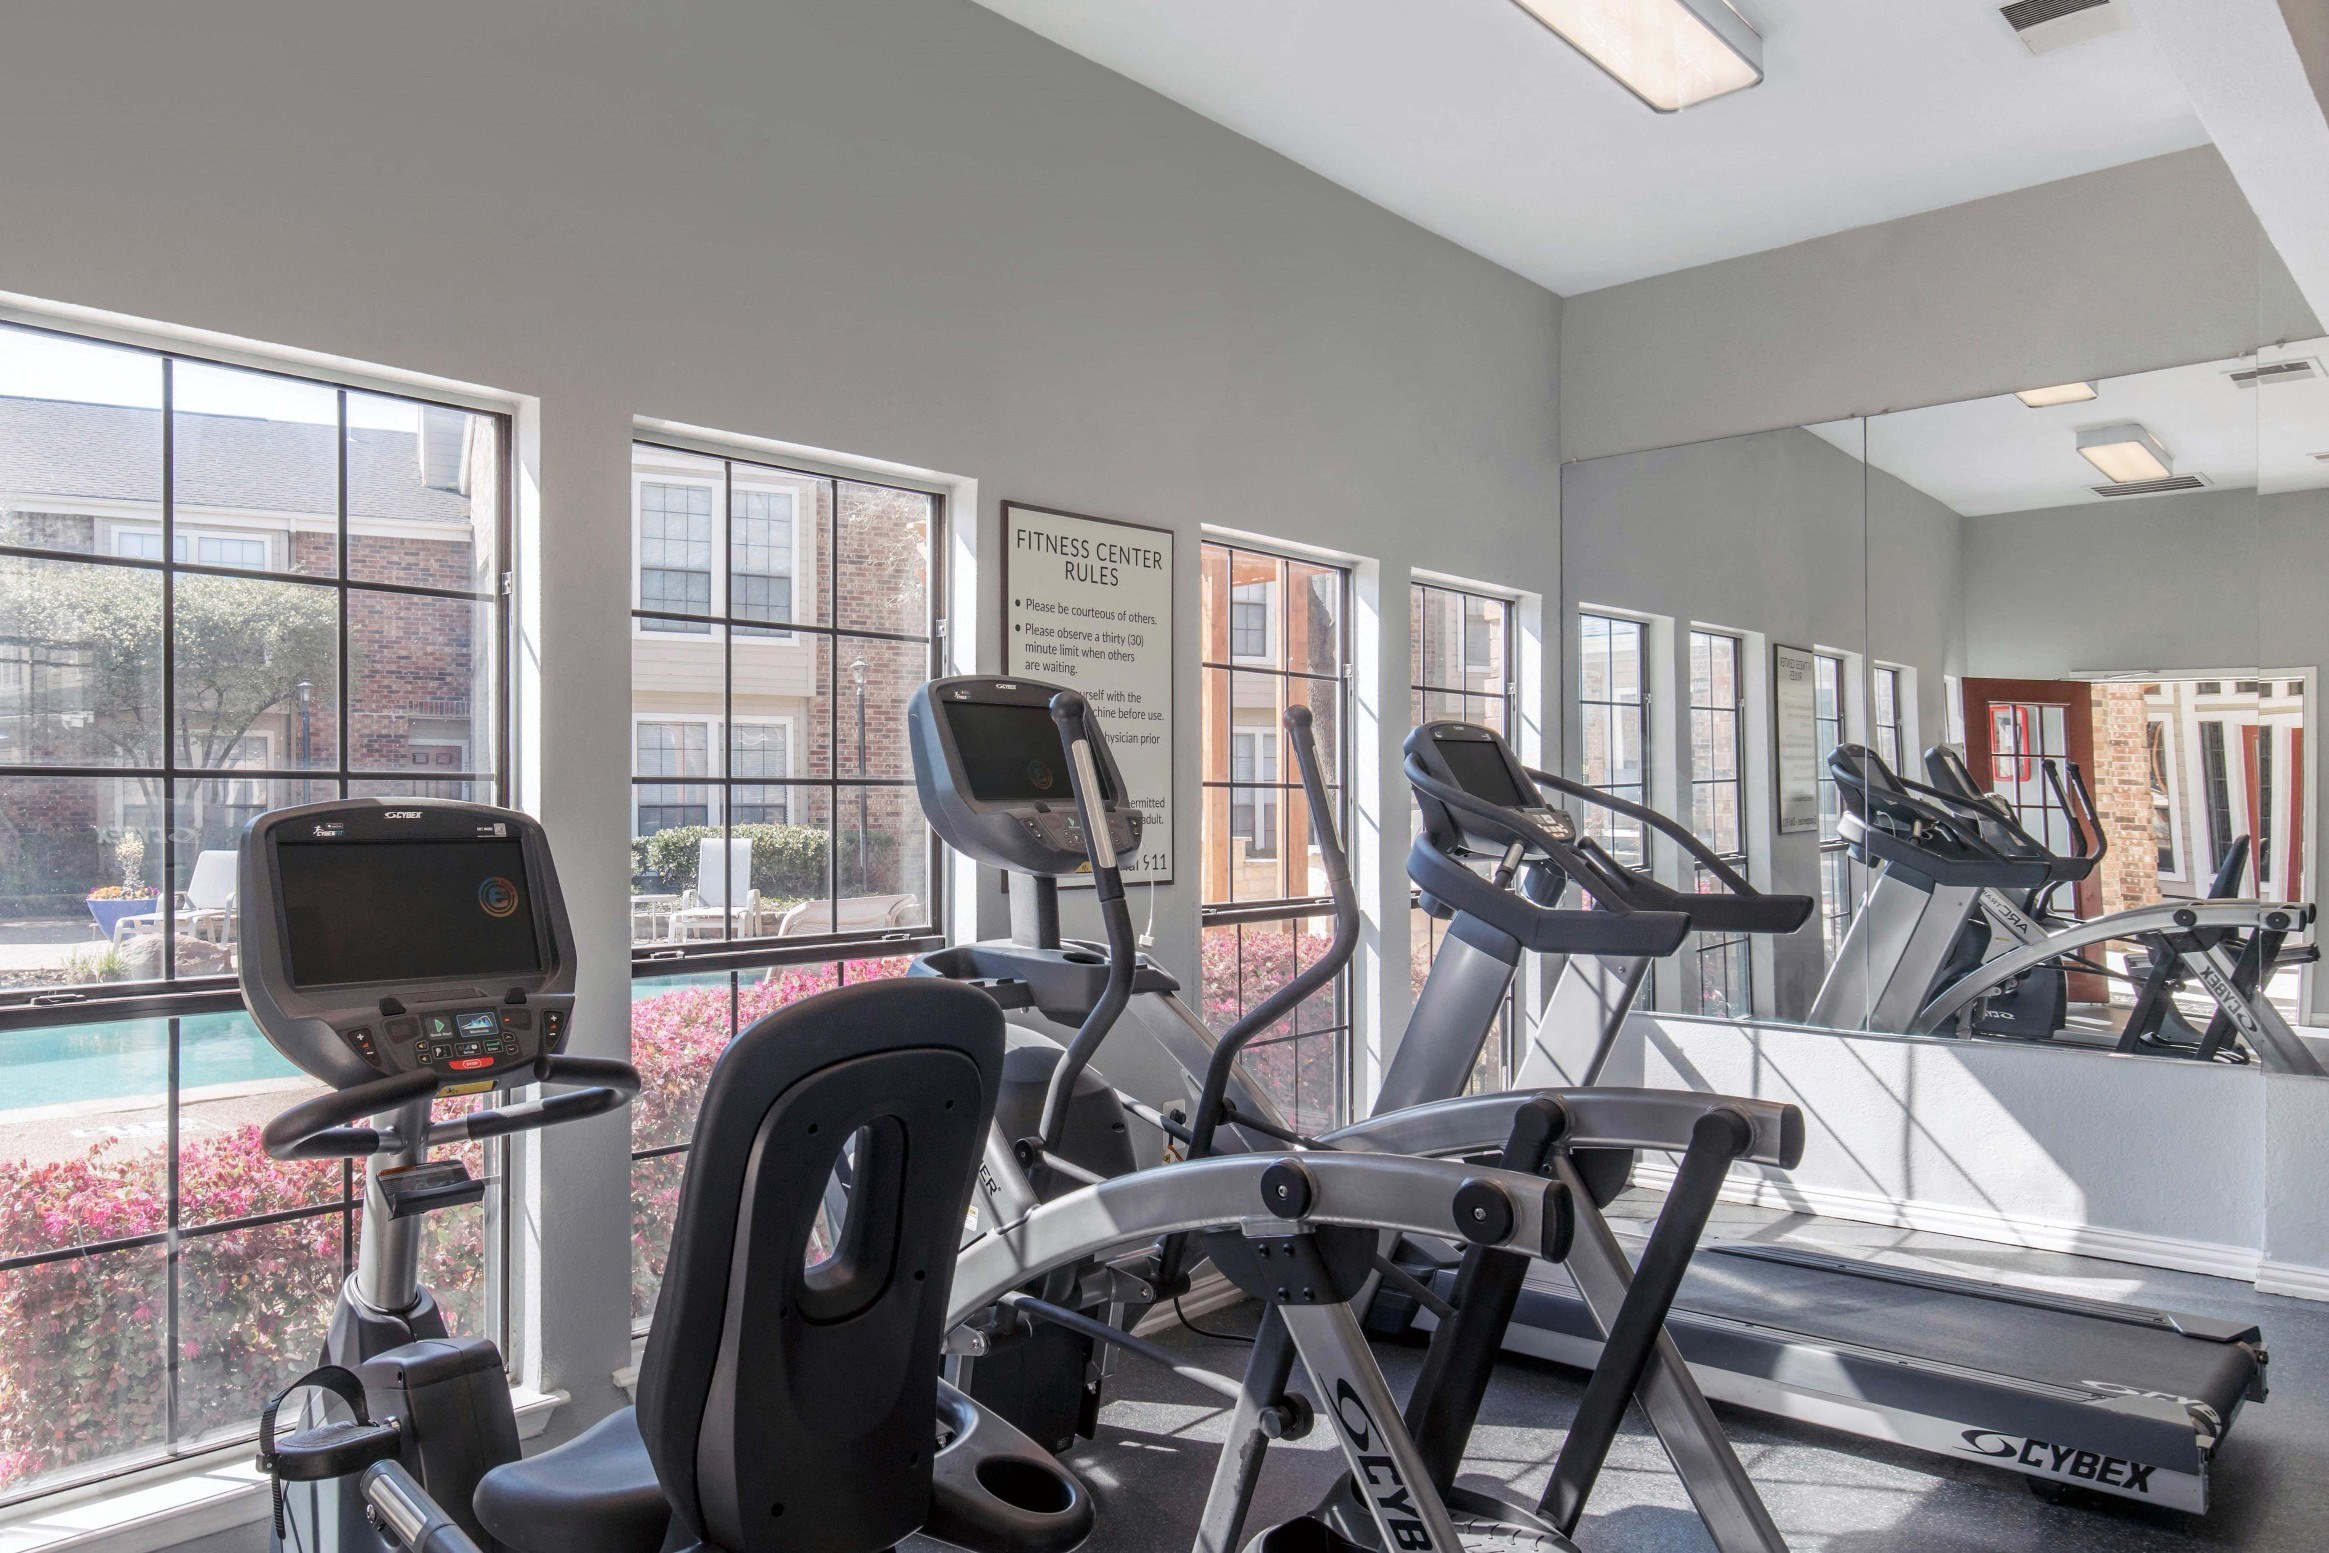 Fitness center with windows and view of pool with pink flowers/landscaping